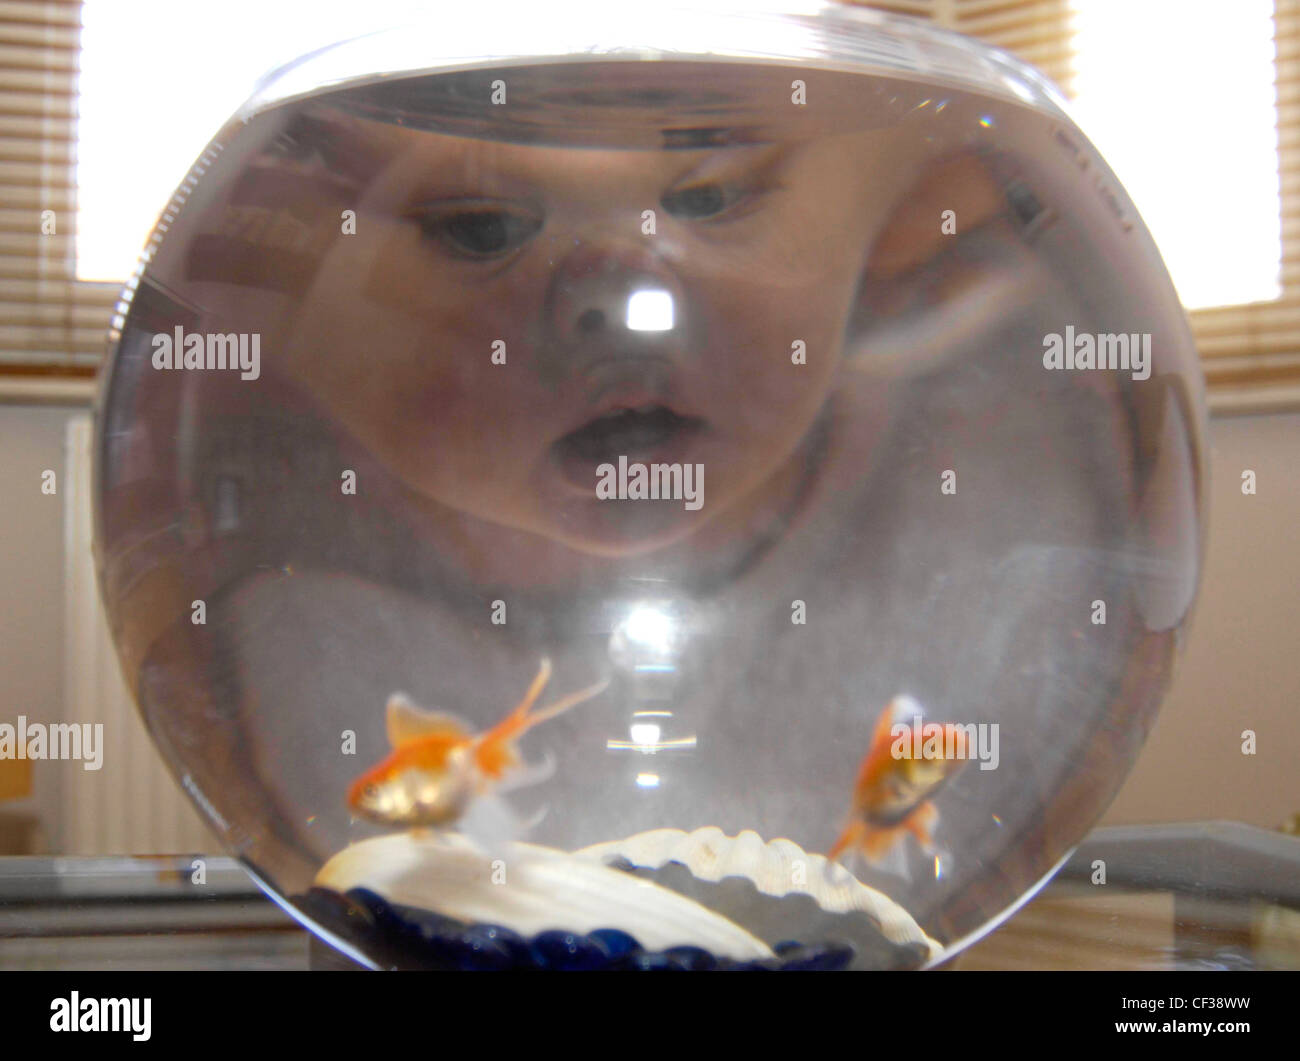 a-young-toddler-watching-goldfish-in-a-glass-bowl-her-face-is-distorted-CF38WW.jpg